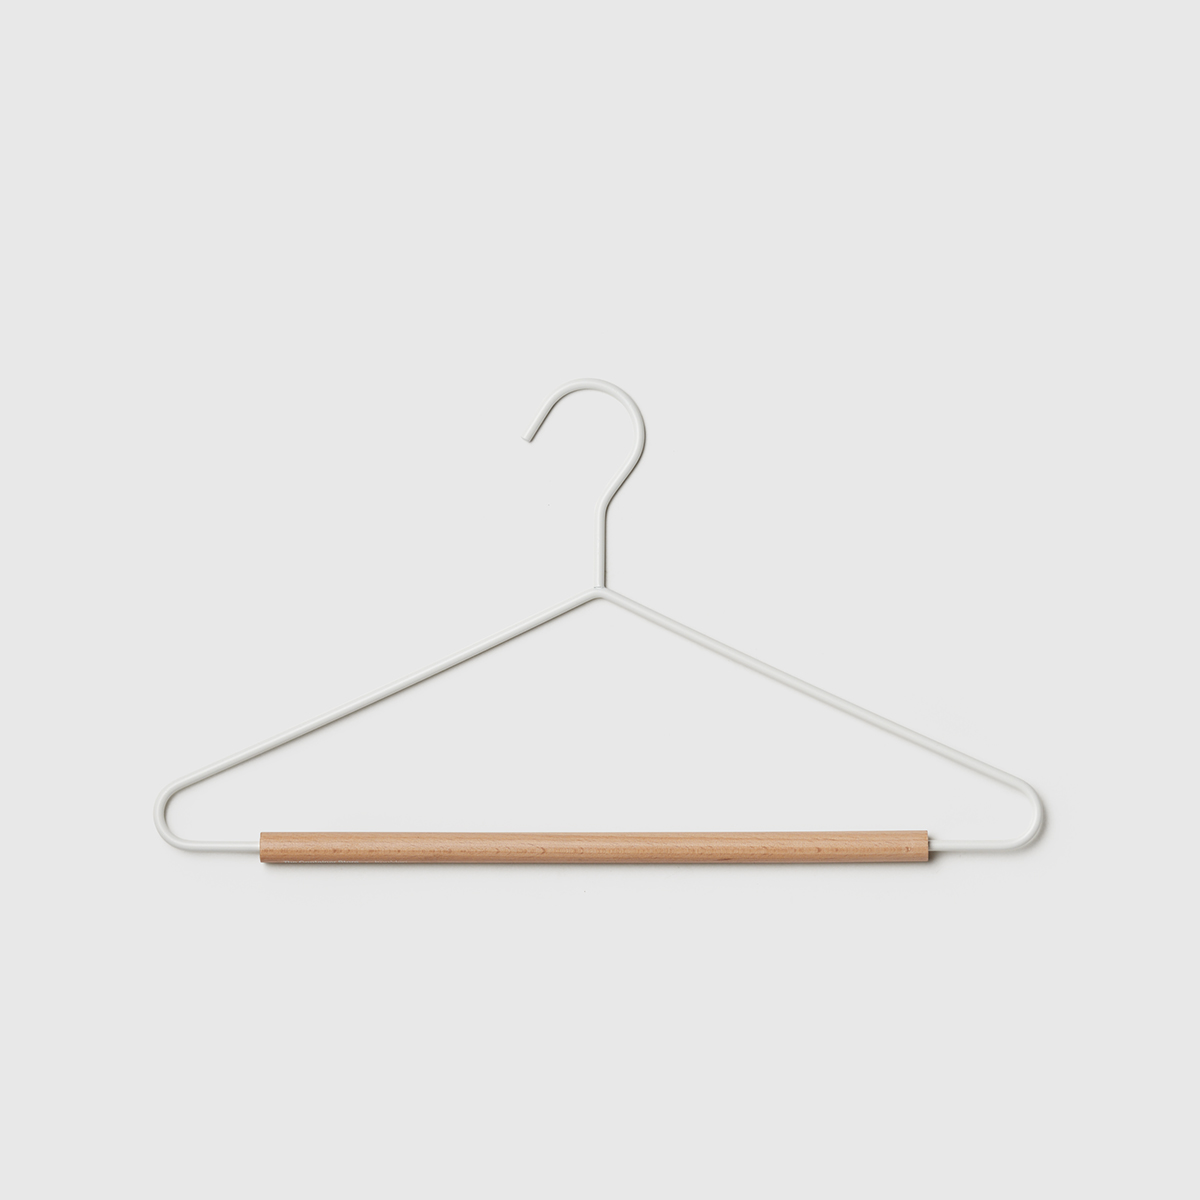 Marie Kondo Cloud White Serene Matte Metal Hangers Case of 20